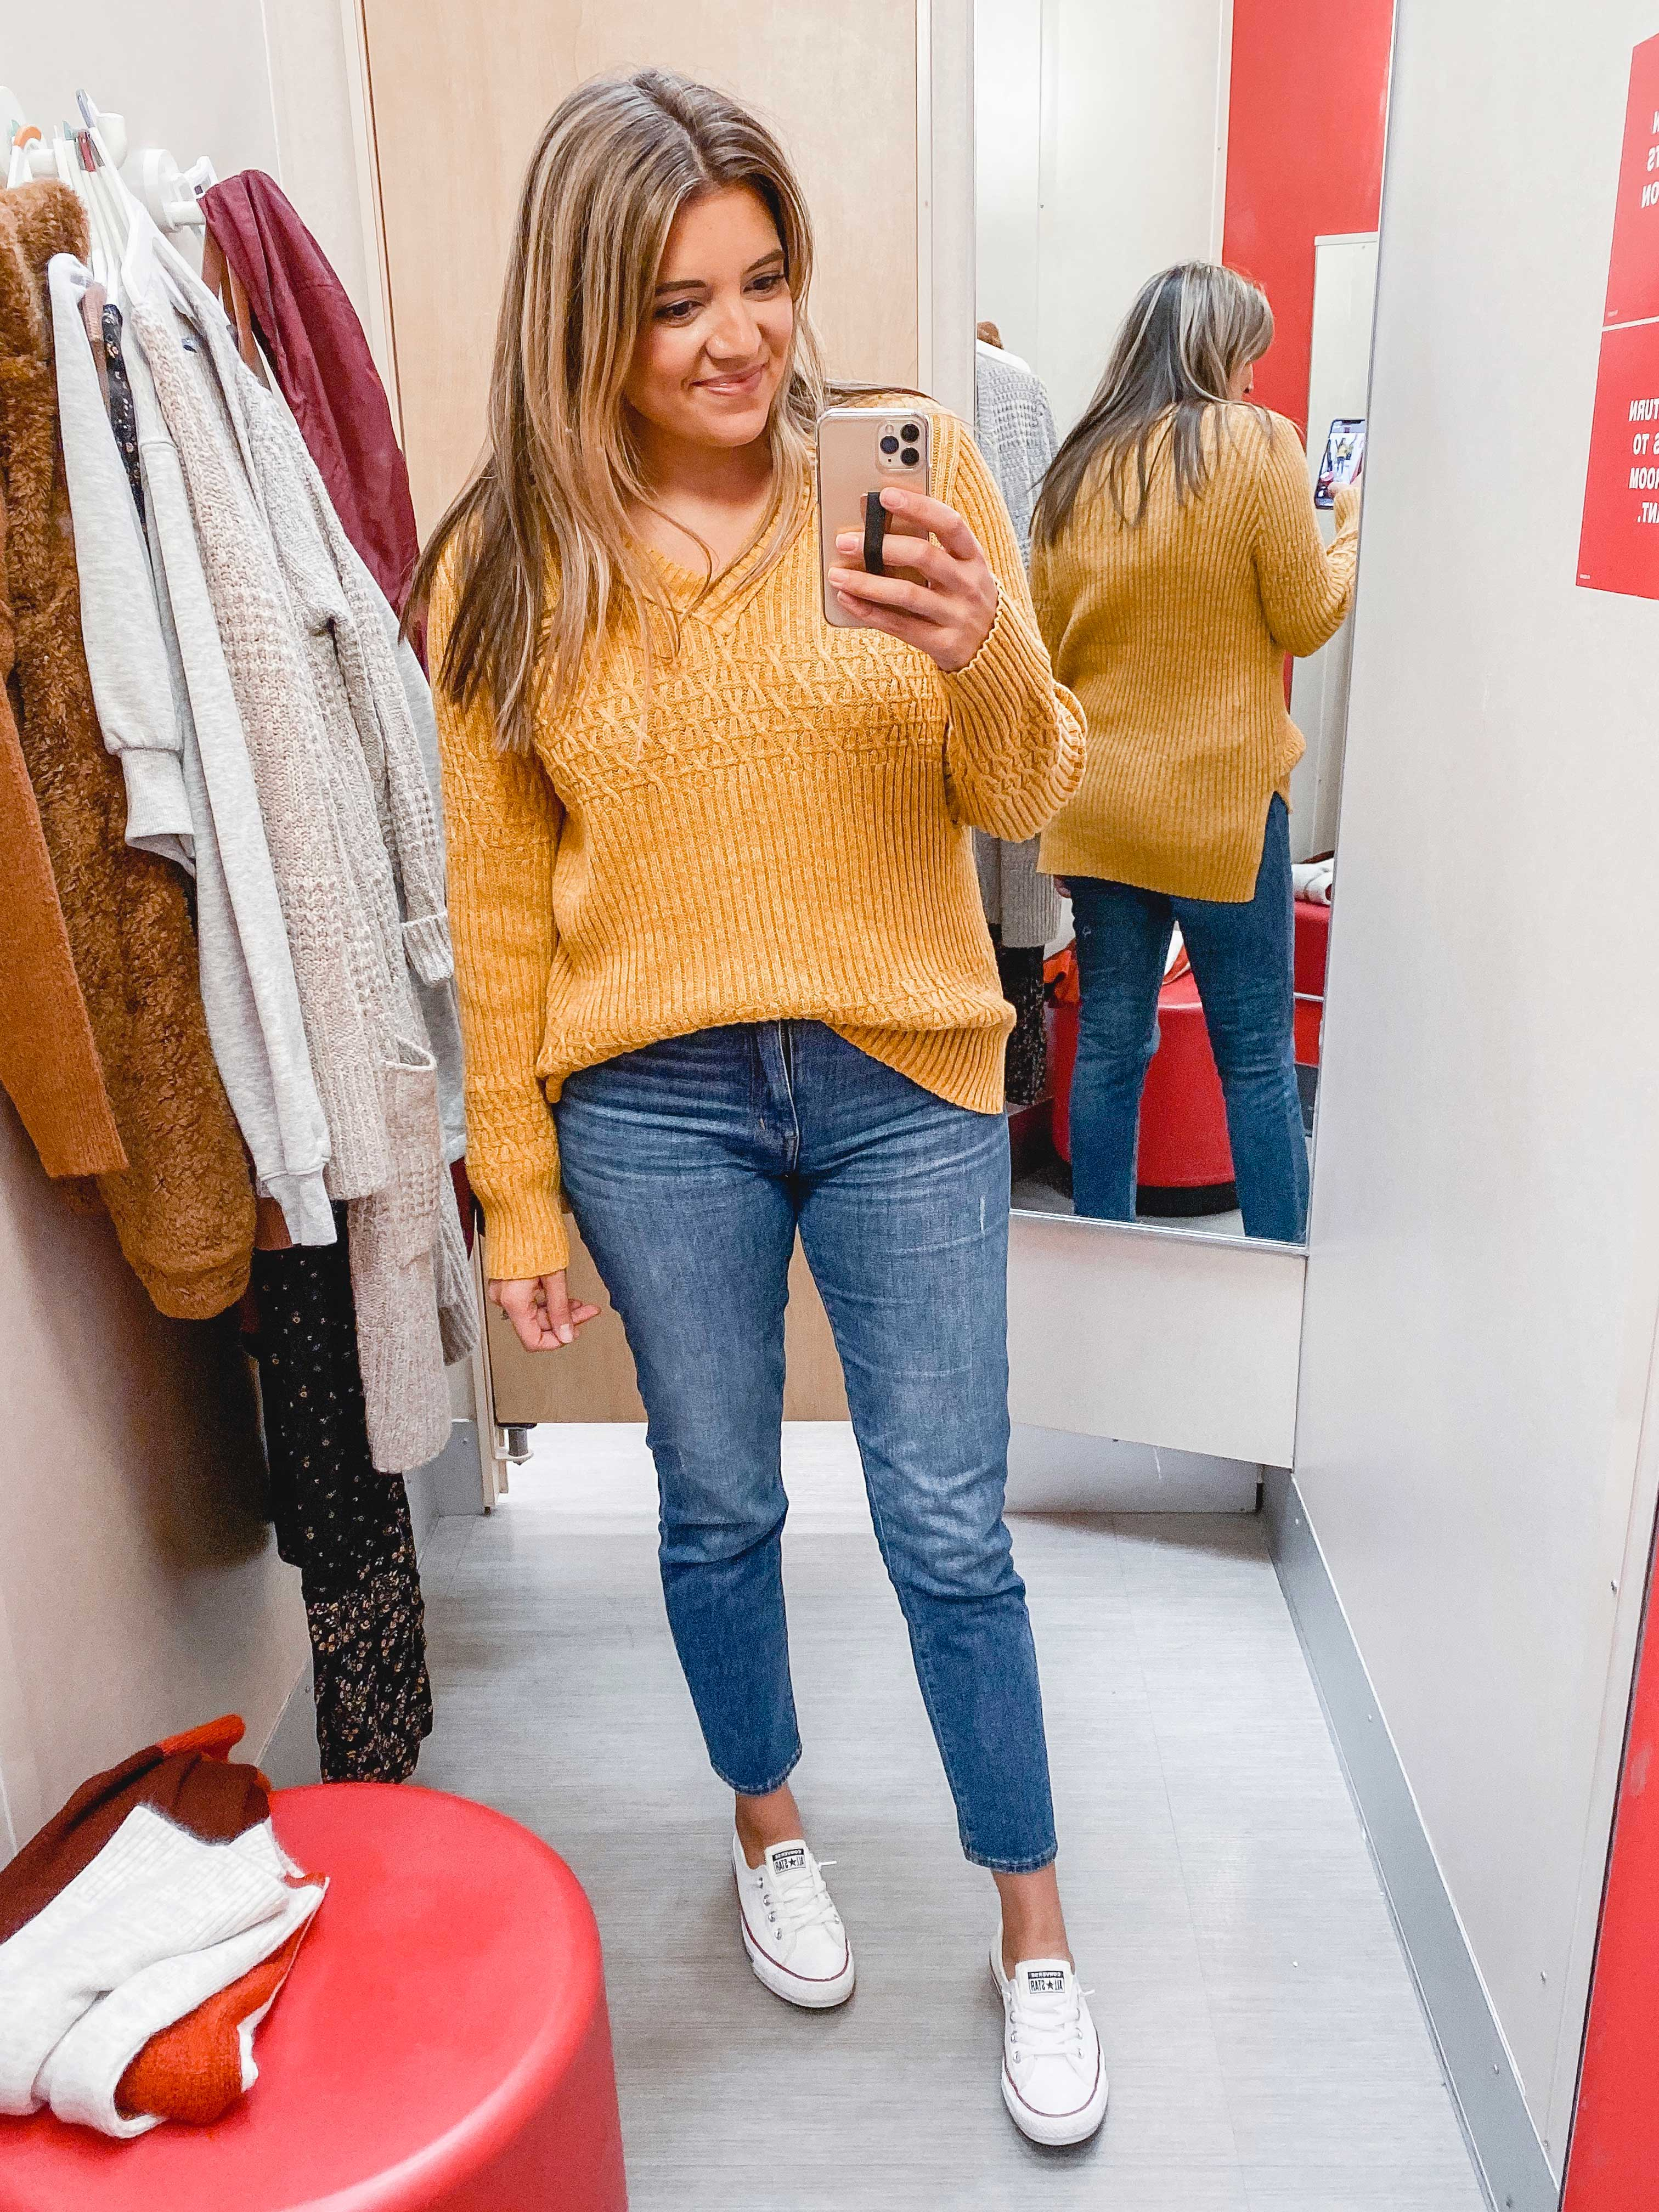 Virginia blogger, Lauren Dix, shares over ten of the cutest Target women's clothes in her Fall Target try on!